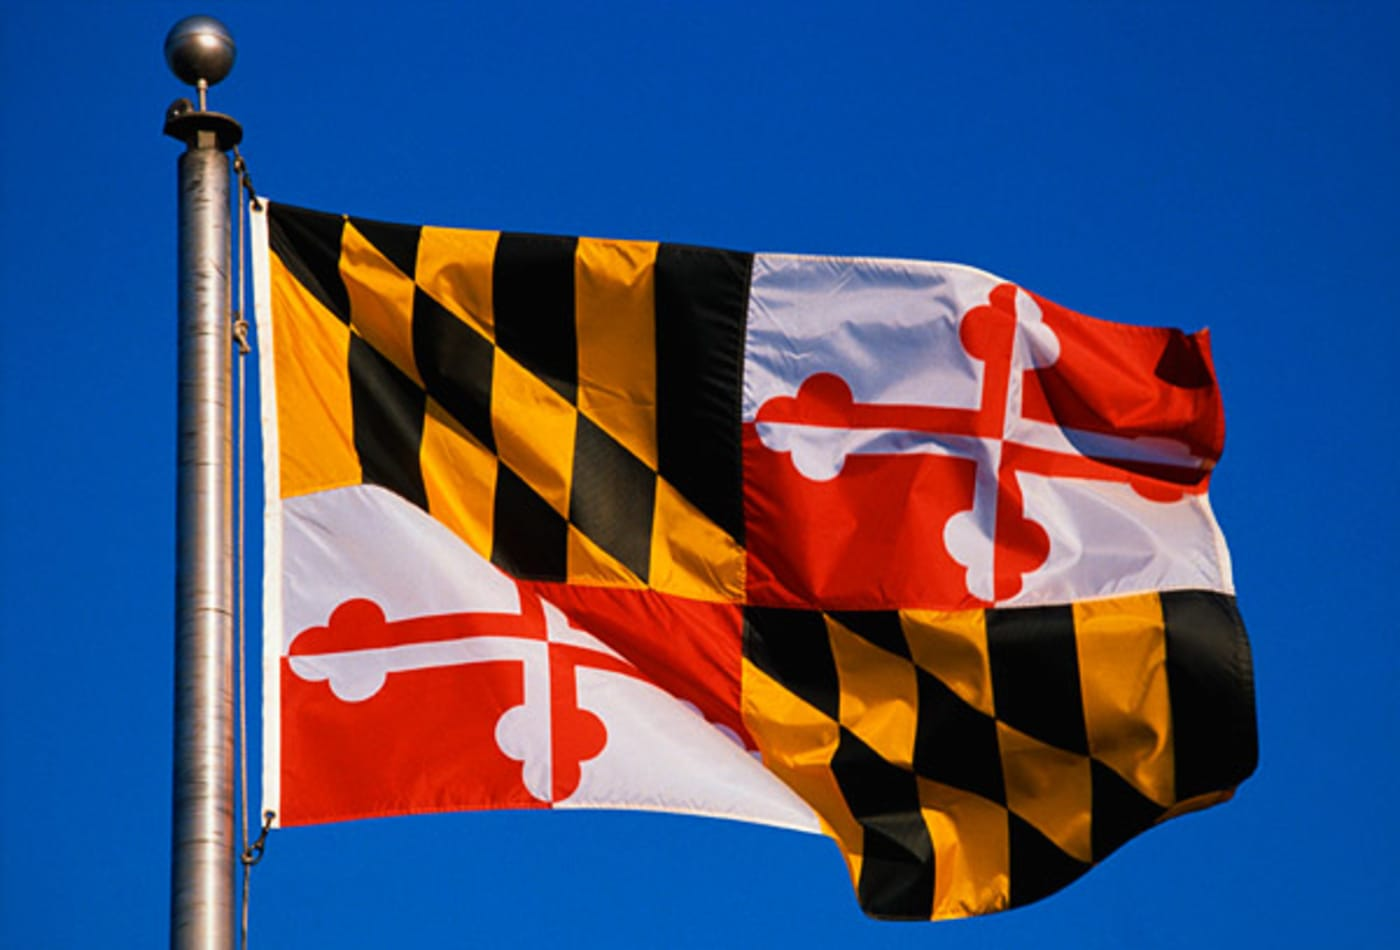 Maryland-States-With-The-Best-Credit-Scores-CNBC.jpg